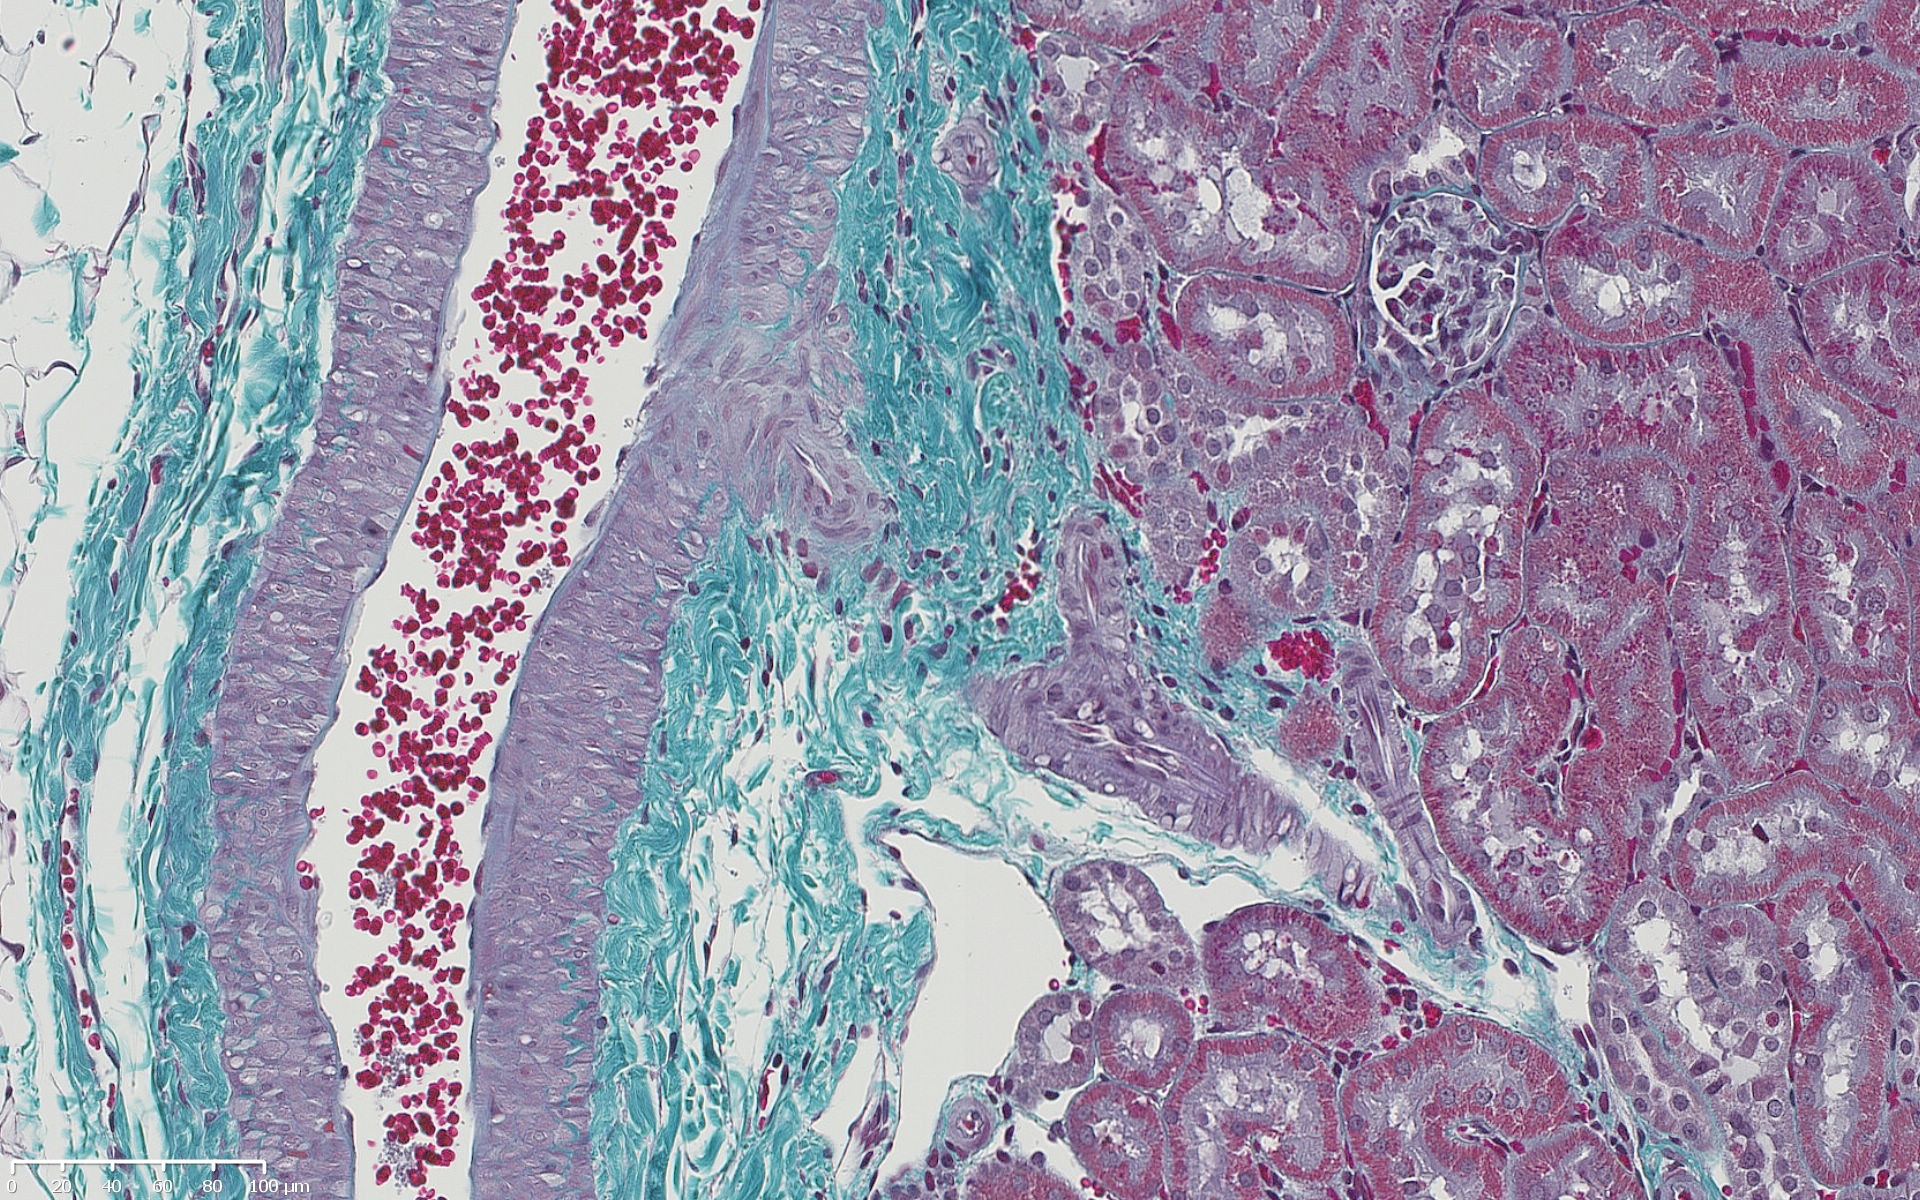 01   Masson's Trichrome stain demonstrating collagen in blue/green, muscle, red blood cells and fibrin in red nuclei in blue/black.